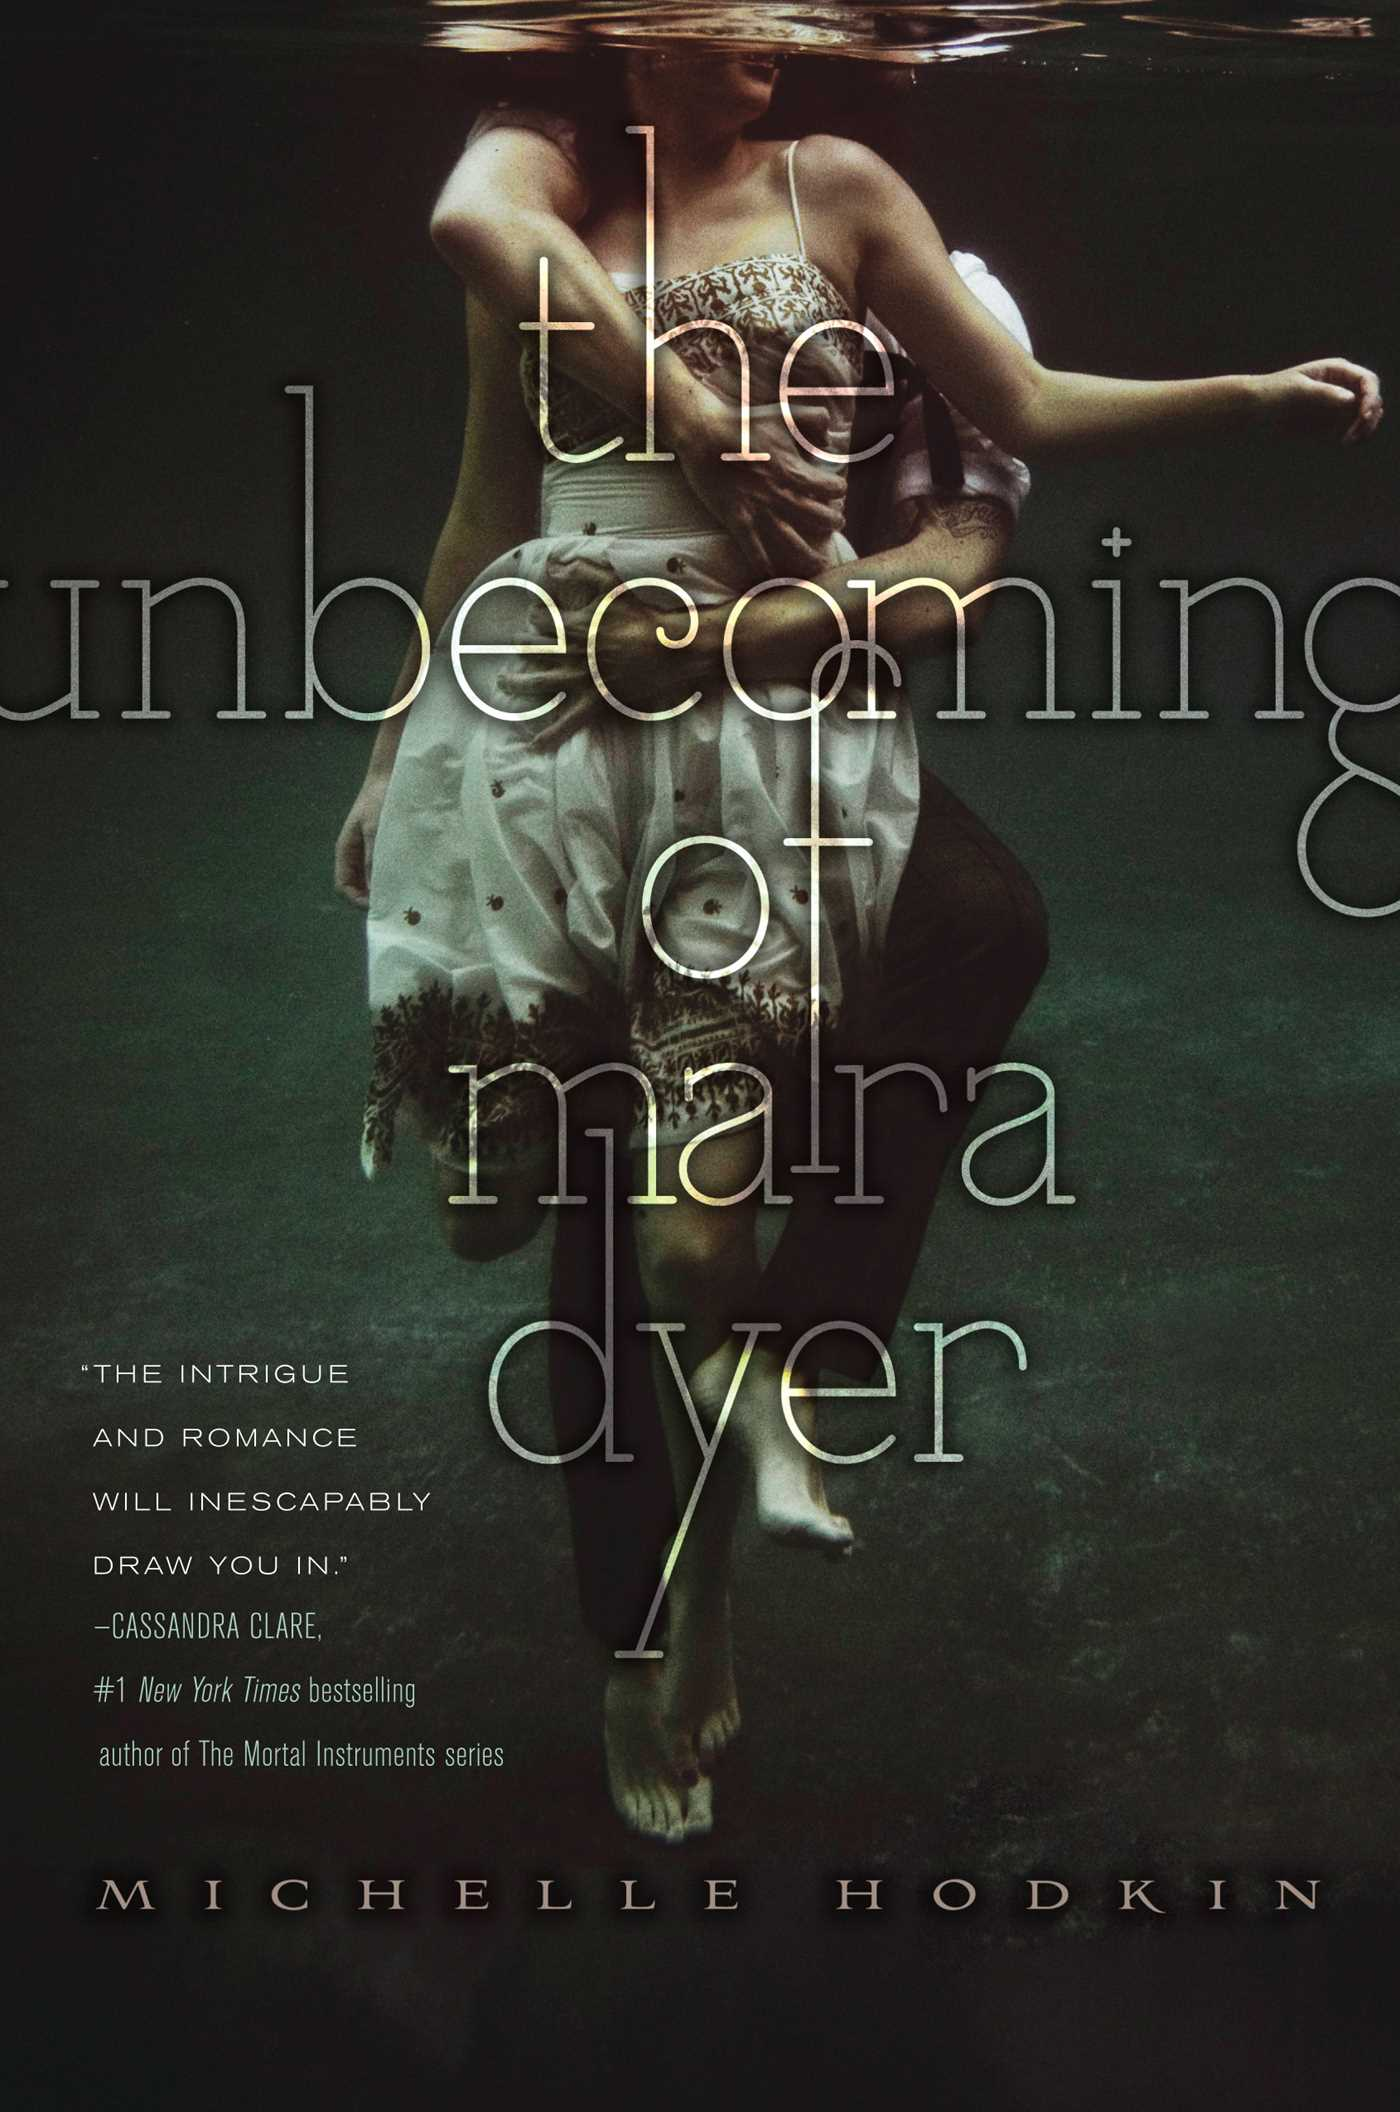 The-unbecoming-of-mara-dyer-9781442421783_hr